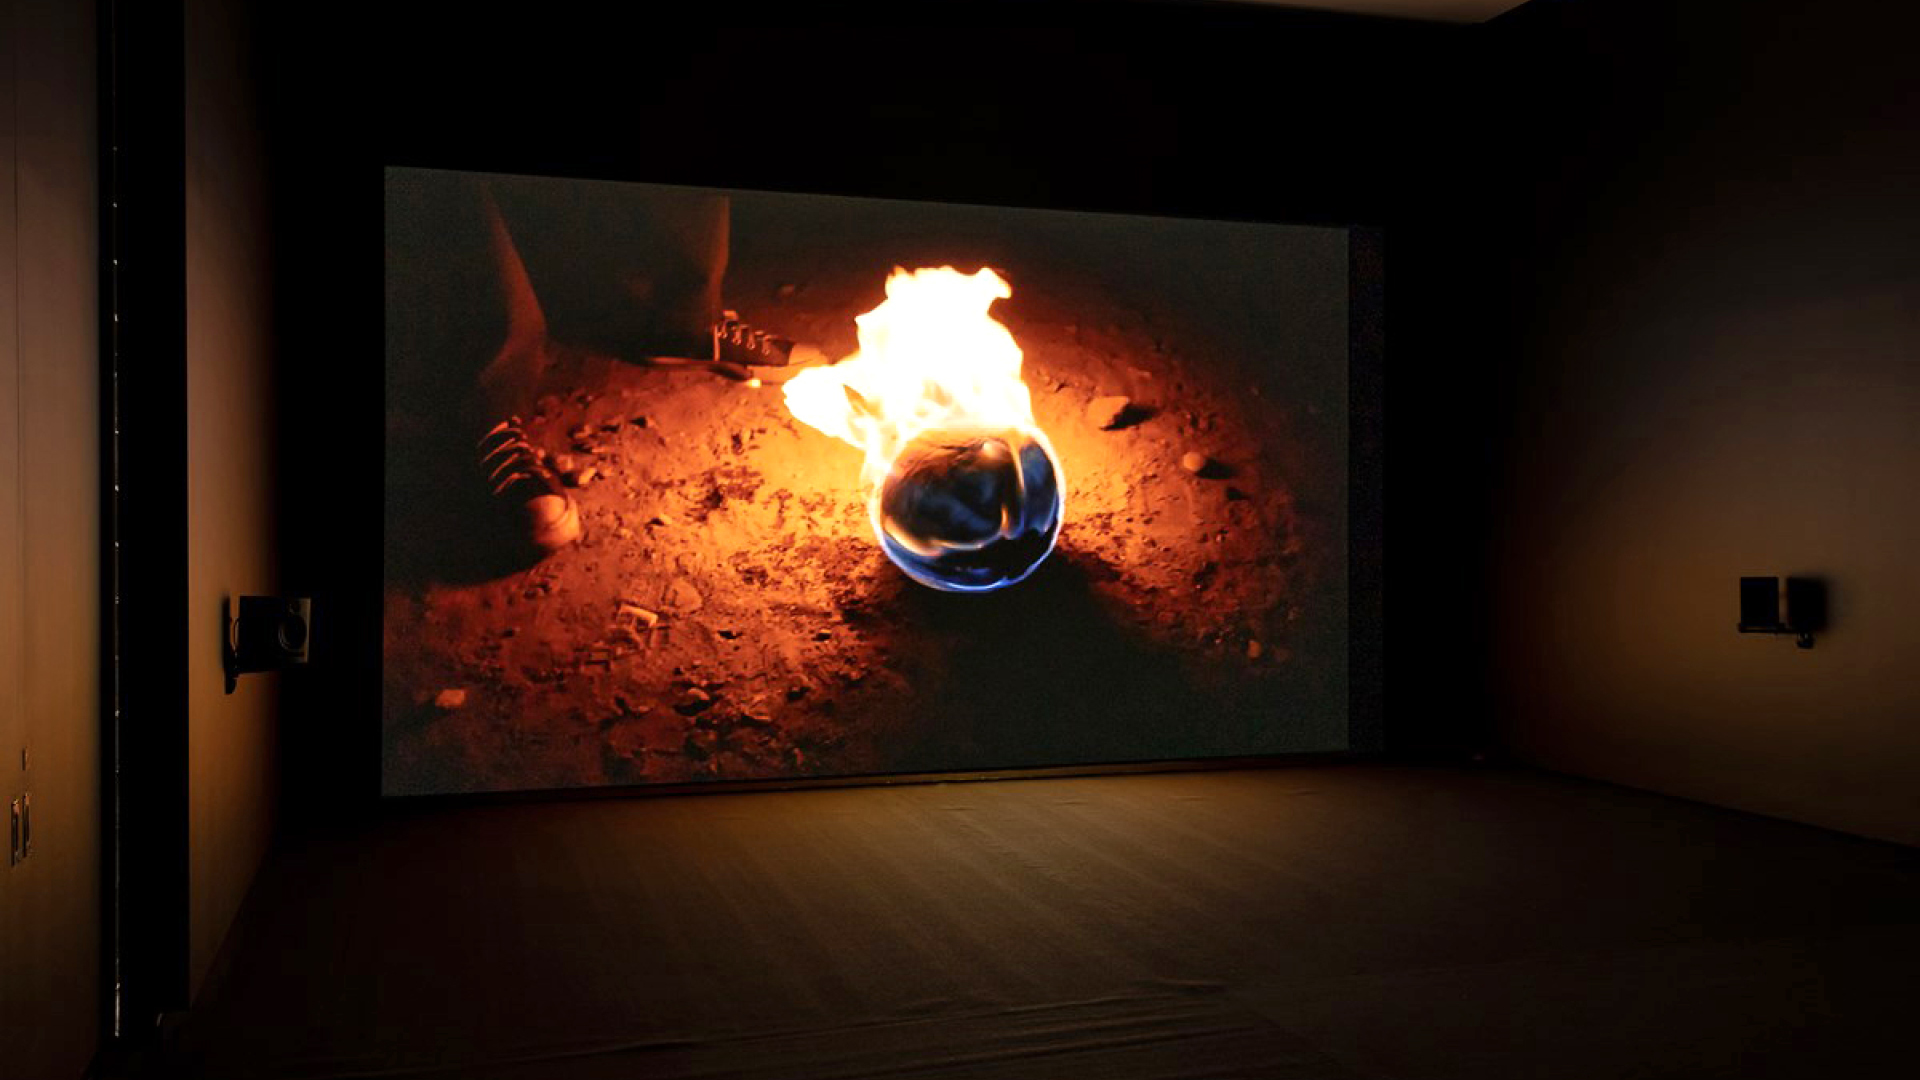 Francis Alÿs, Paradox of Praxis 5: Sometimes we dream as we live & sometimes we live as we dream, Ciudad Juárez, Mexico (2013); exhibition view at TarraWarra Museum of Art| TarraWarra International 2019: The Tangible Trace| STIR